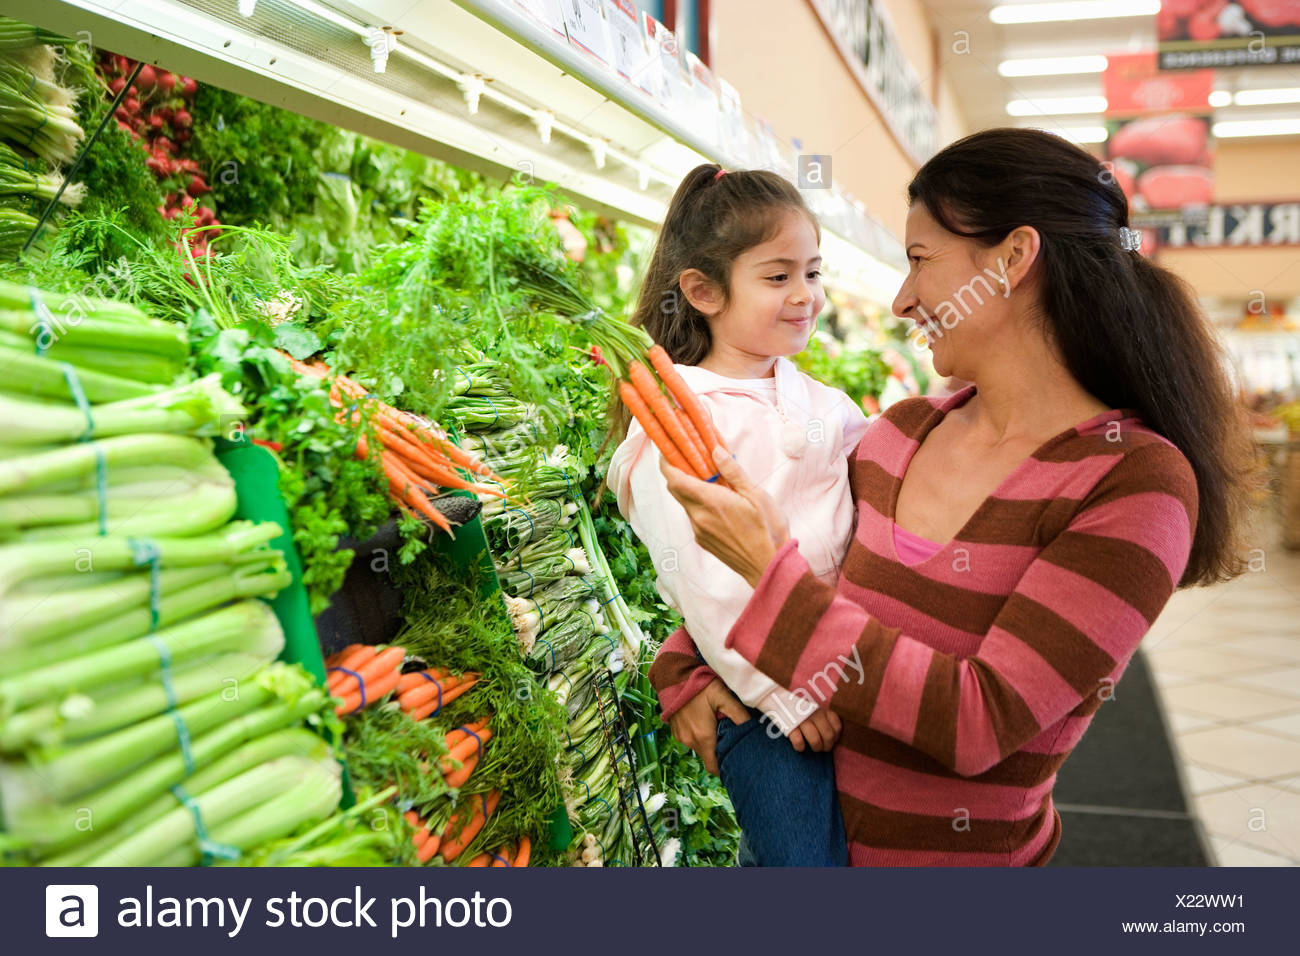 Mother and daughter 4 6 shopping in vegetable section of supermarket woman holding carrots - Stock Image